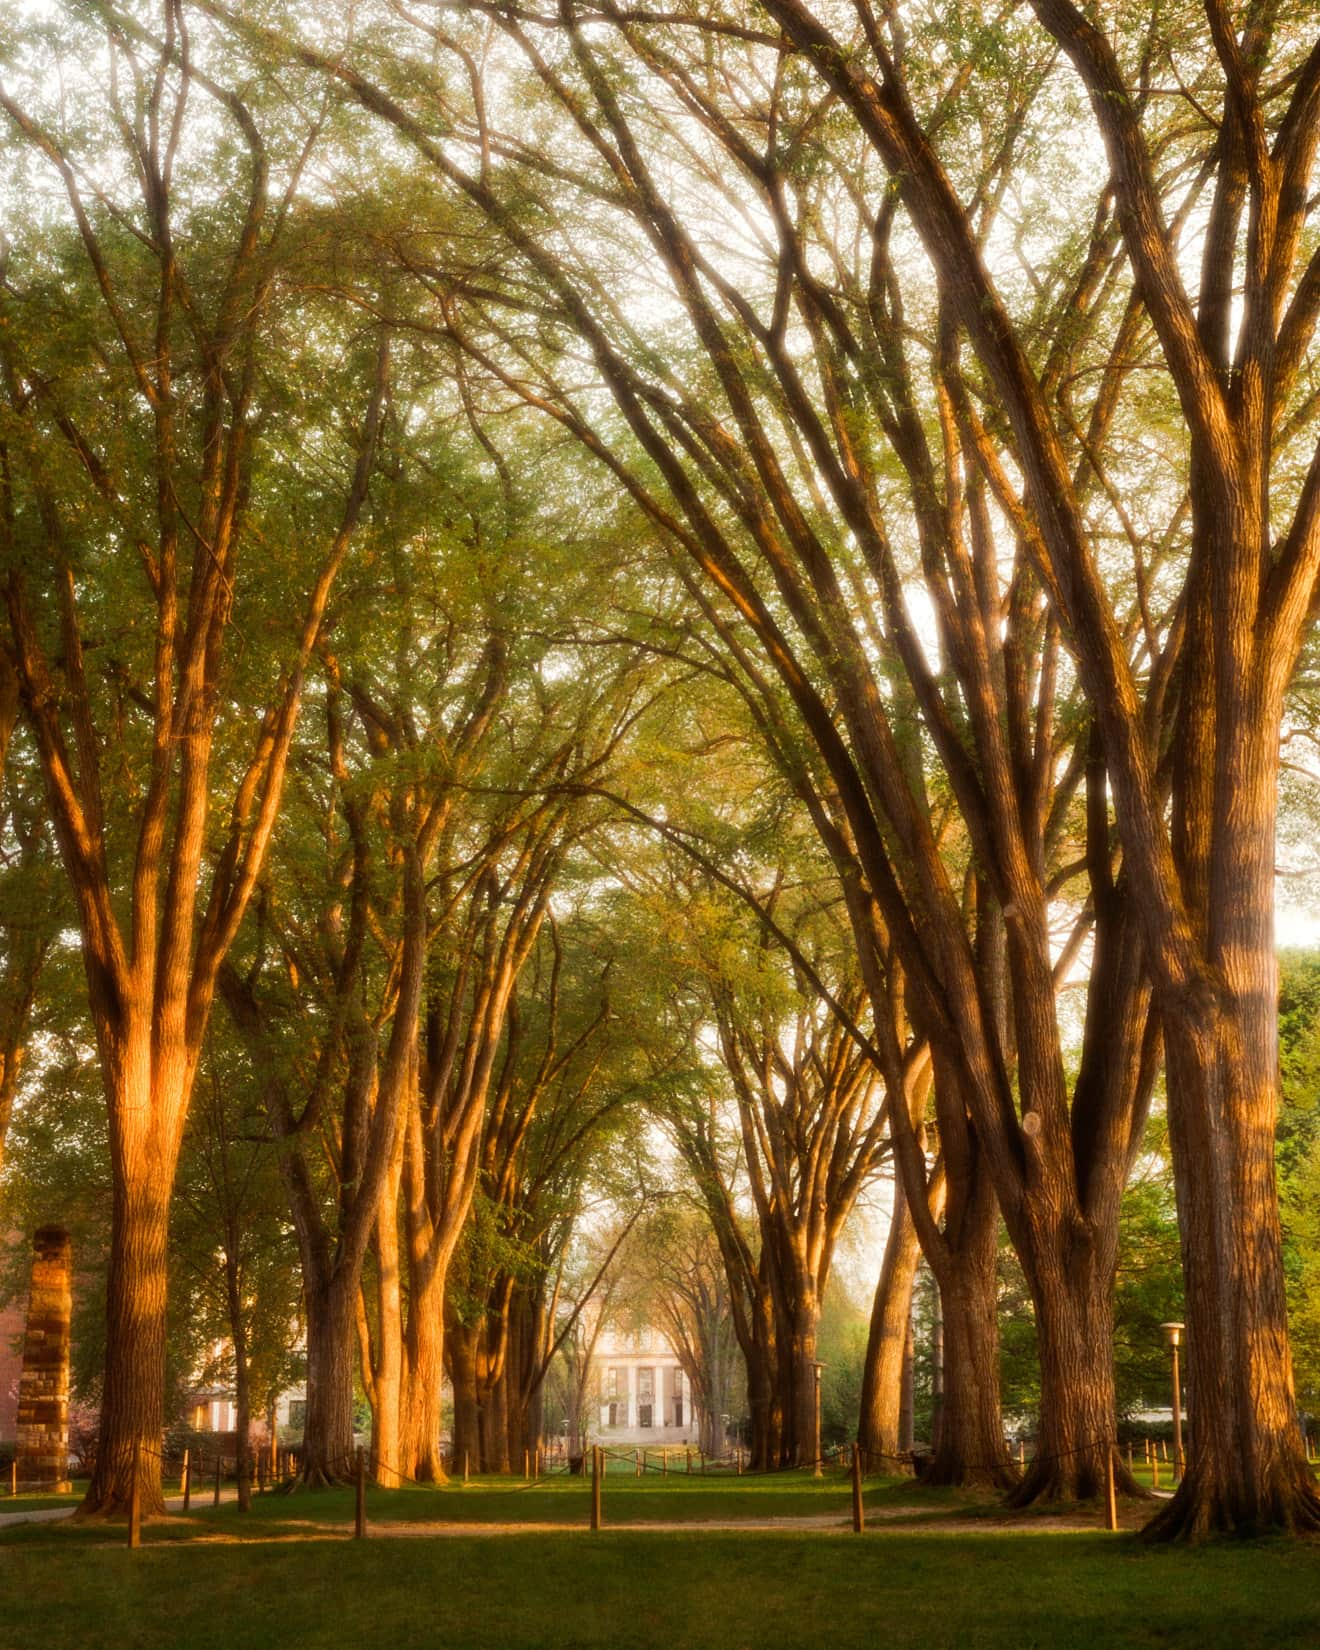 The Elms, by Bob Lambert Photography (Penn State Campus, State College, PA)